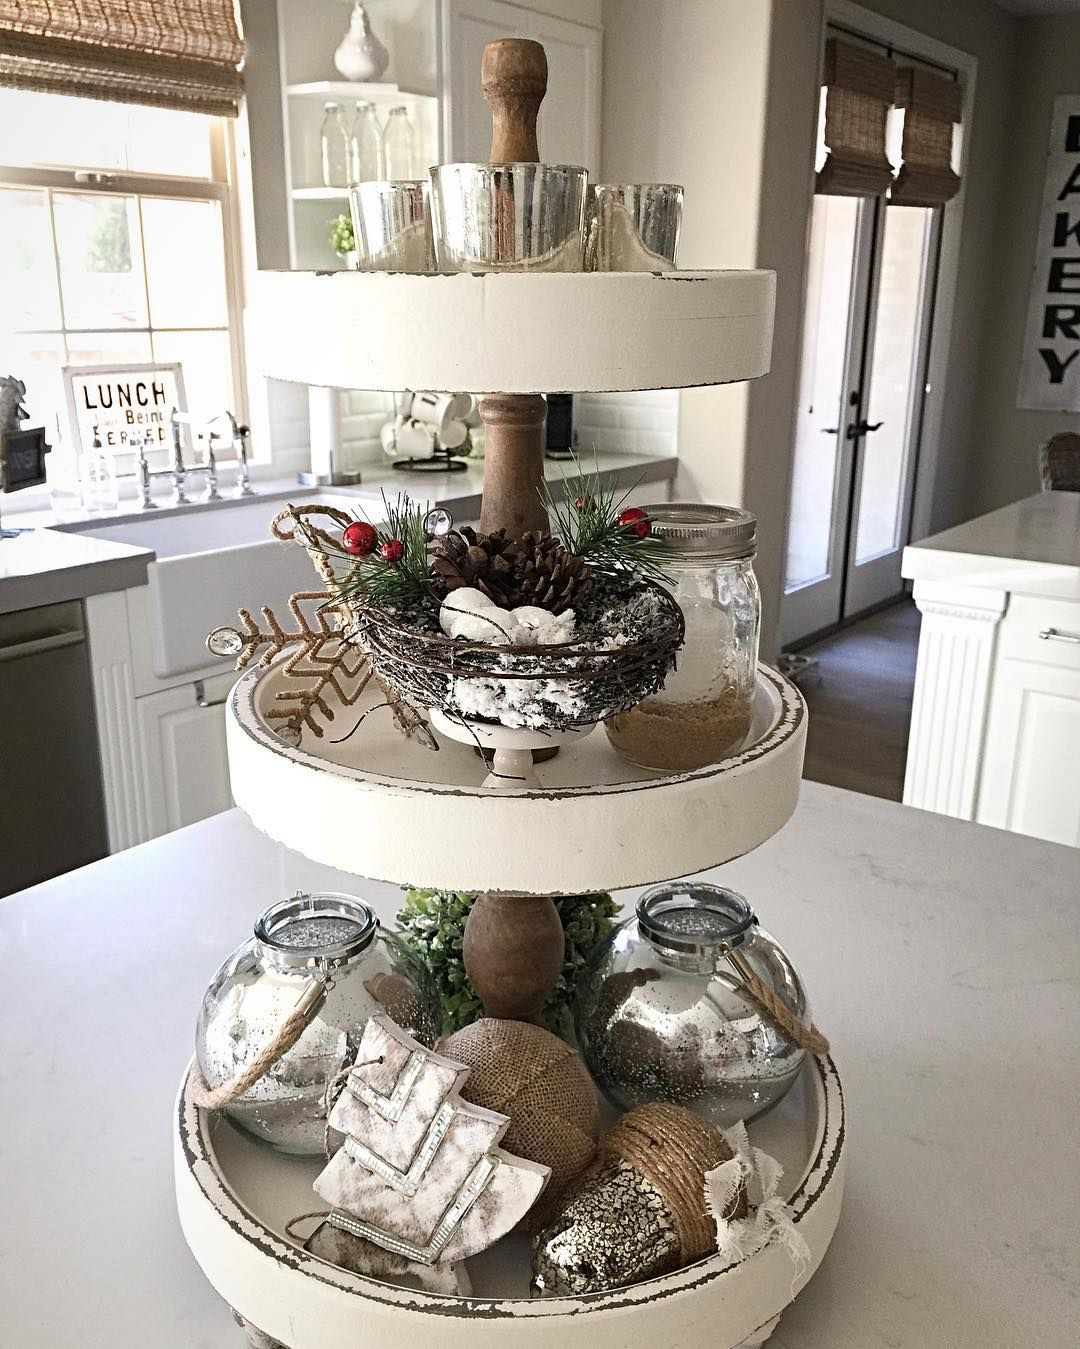 Sharing Some Christmas Bling On My Favorite 3 Tier Tray Off To Decorate The Christmas Tree Finally Tray Decor Tiered Tray Tiered Tray Decor